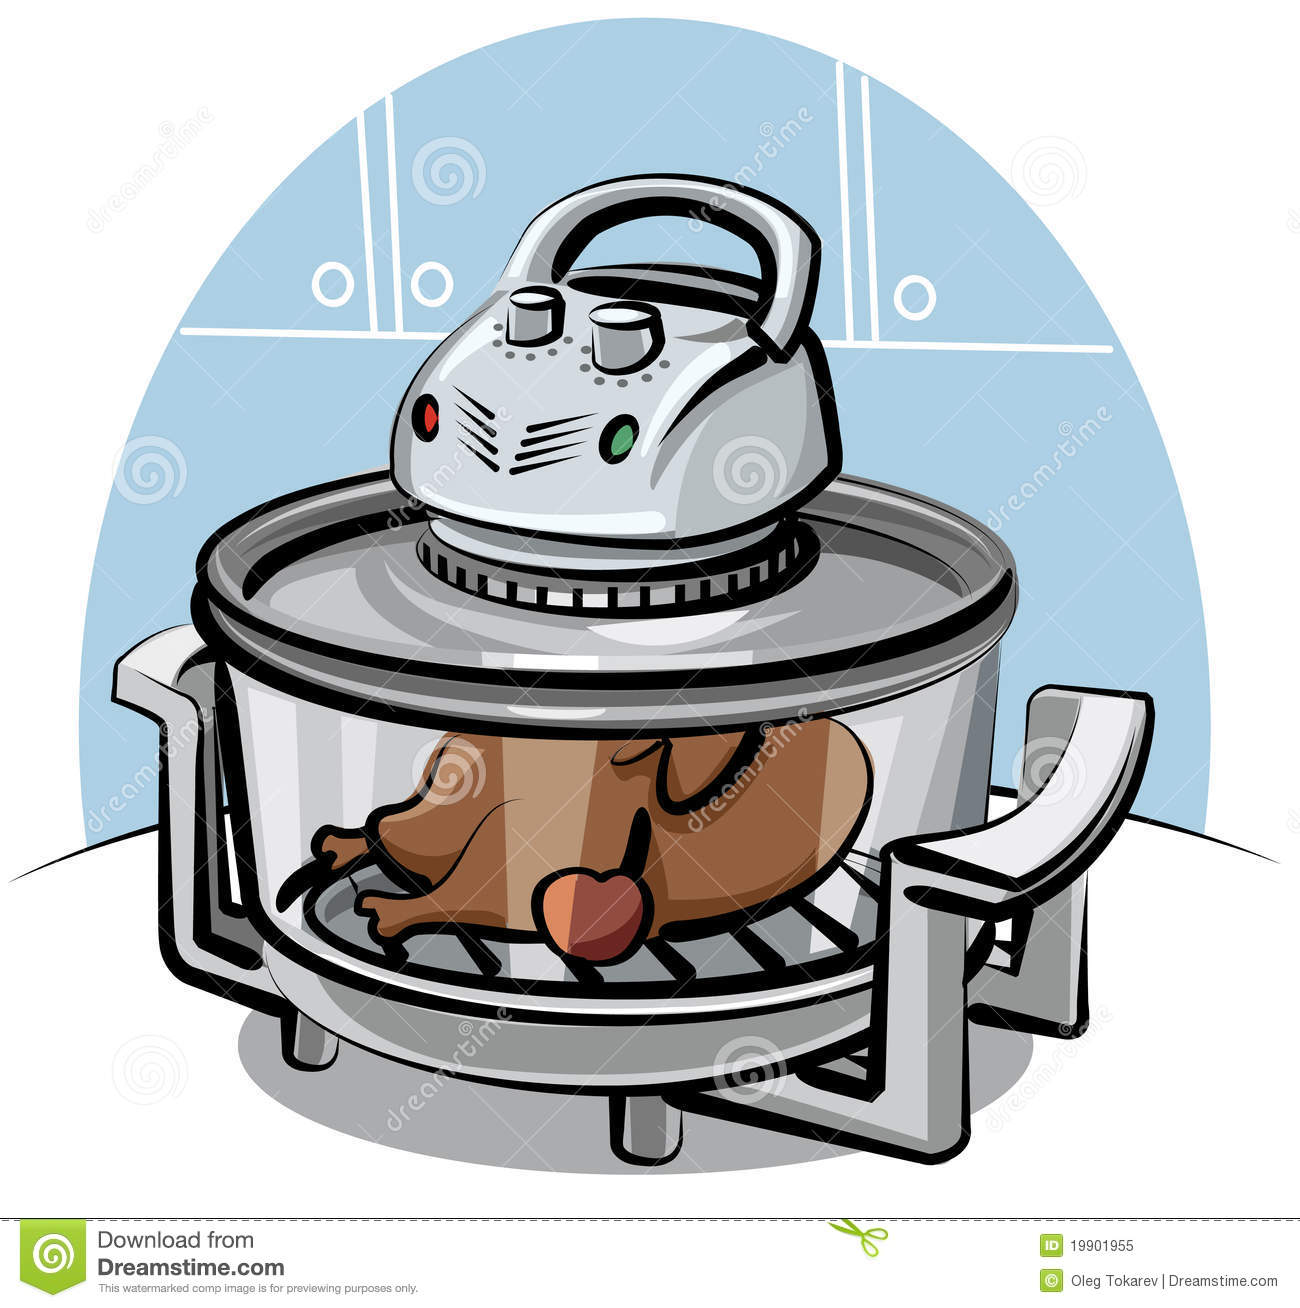 Electric Grill With Roasted Chicken Royalty Free Stock Photo.